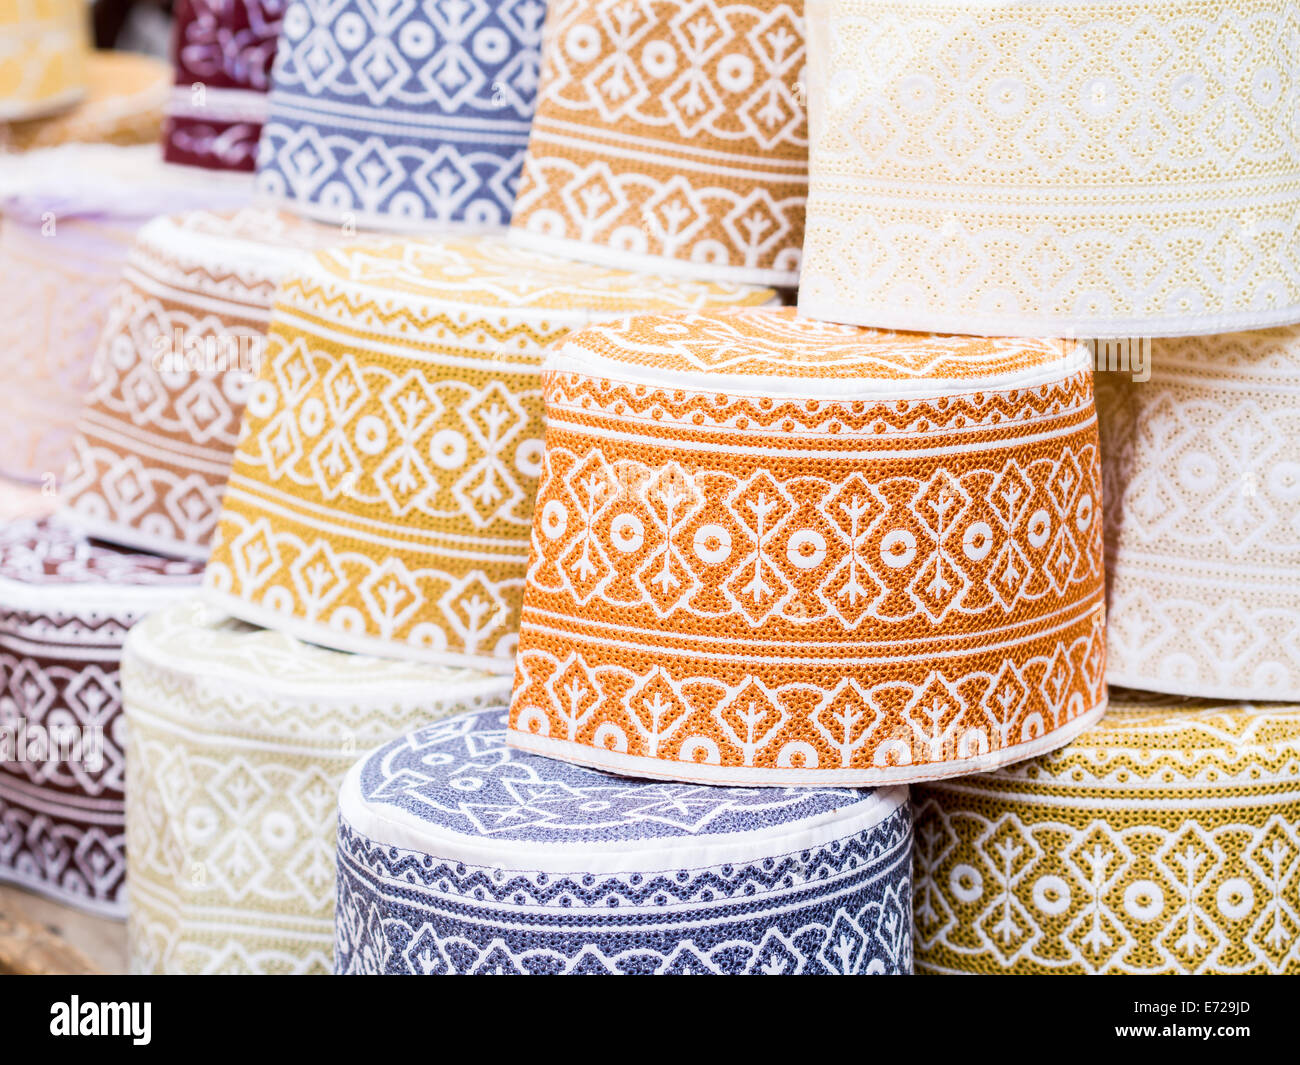 Muslim hats called taqiyah on a stand in Darajani Market in Stone Town on Zanzibar. - Stock Image